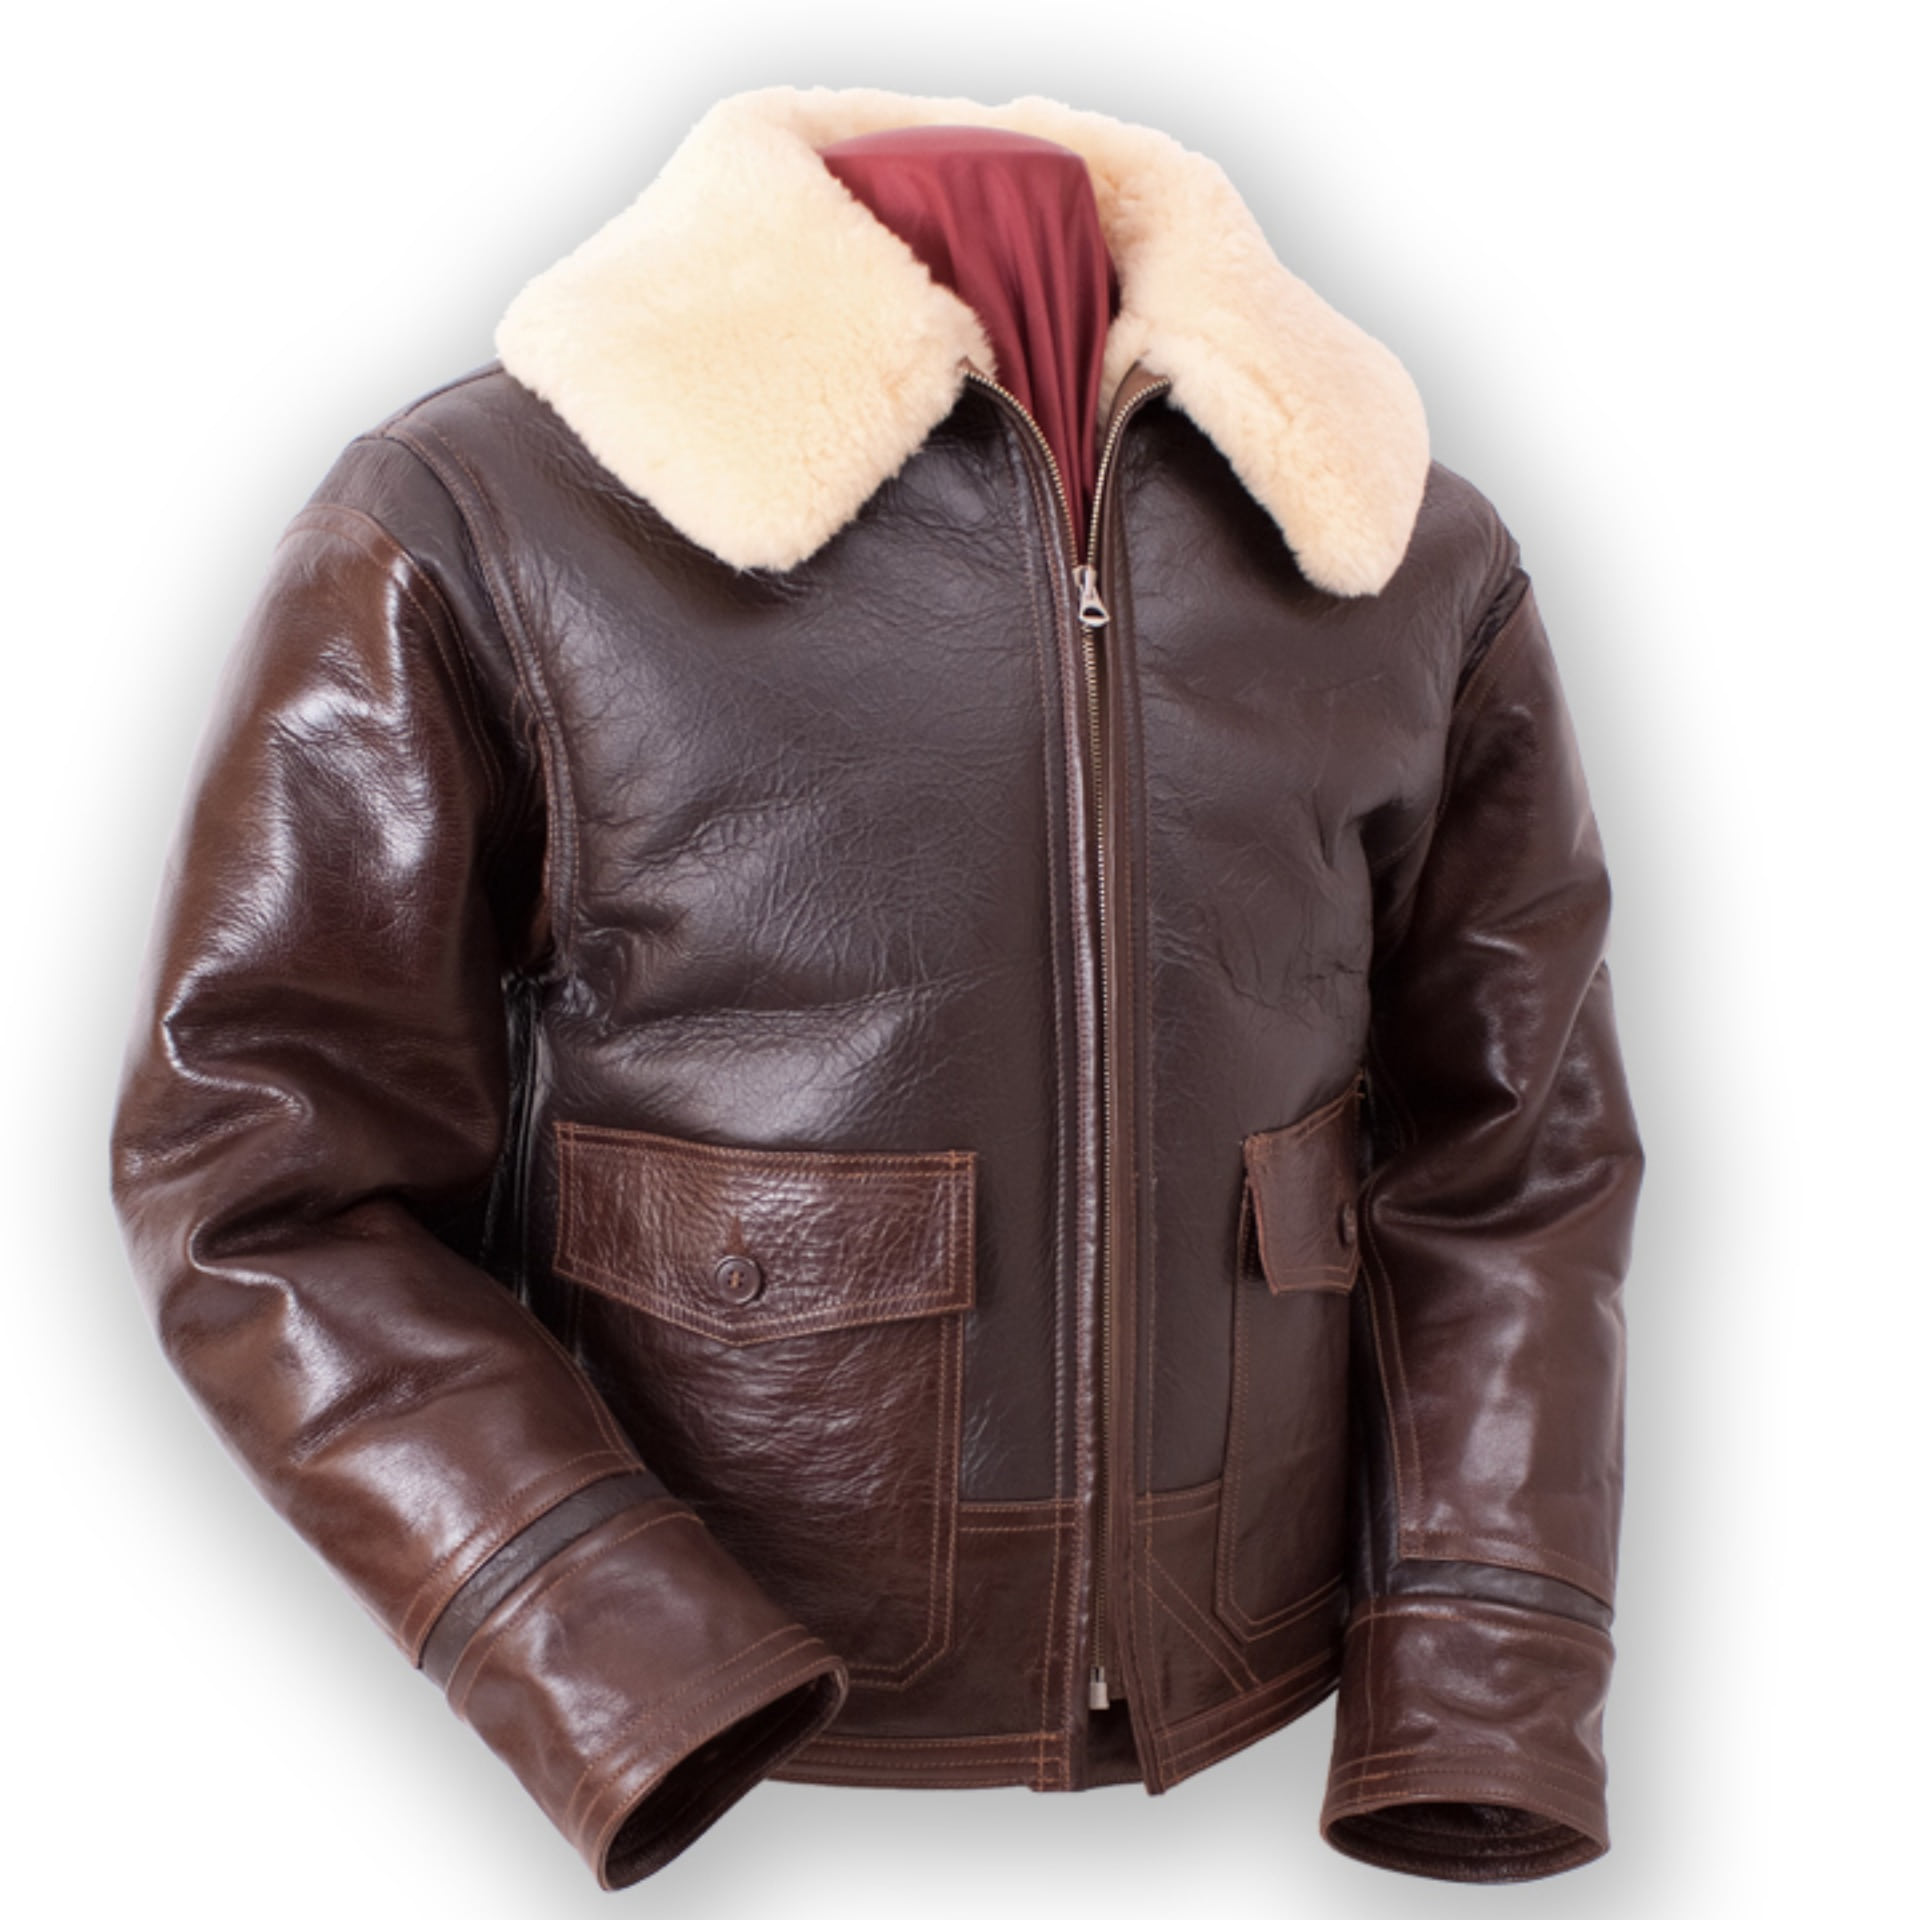 12월2주차 배송예정Flying Type ANJ-4 (Seal Brown)